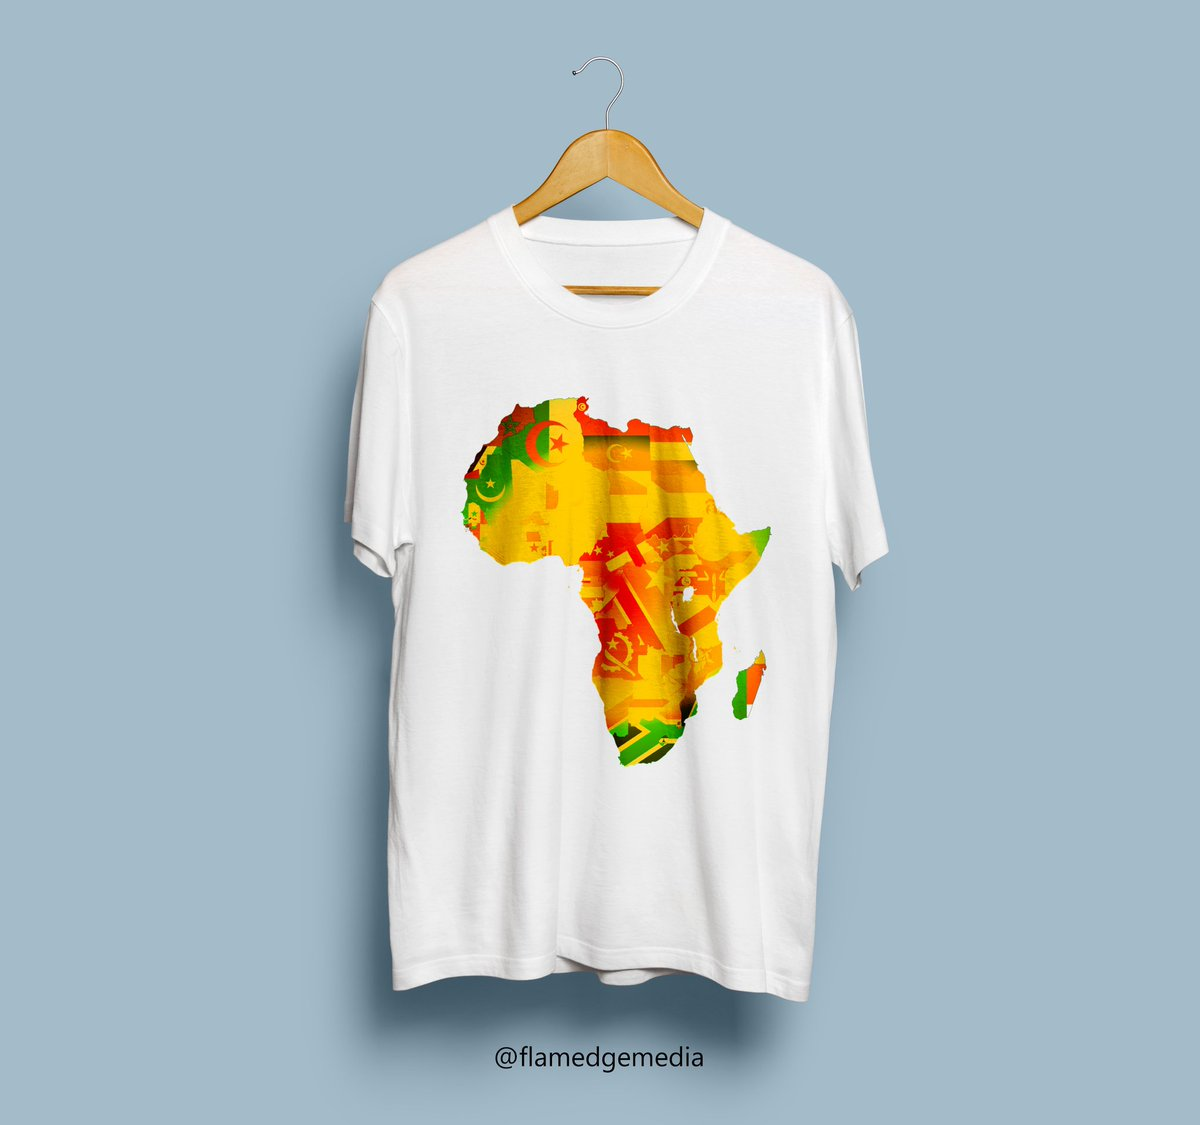 T-shirt mockup 💕  Do you need one for your personal use or for your business, organization, etc? Send us a message (link in bio)   #tshirt #tshirtmockup #mockup #designer #designinspiration #design #graphics #graphicdesigner #graphicdesigners #ghtrending #ghana🇬🇭 #iloveafrica https://t.co/eBAS0Lk1My